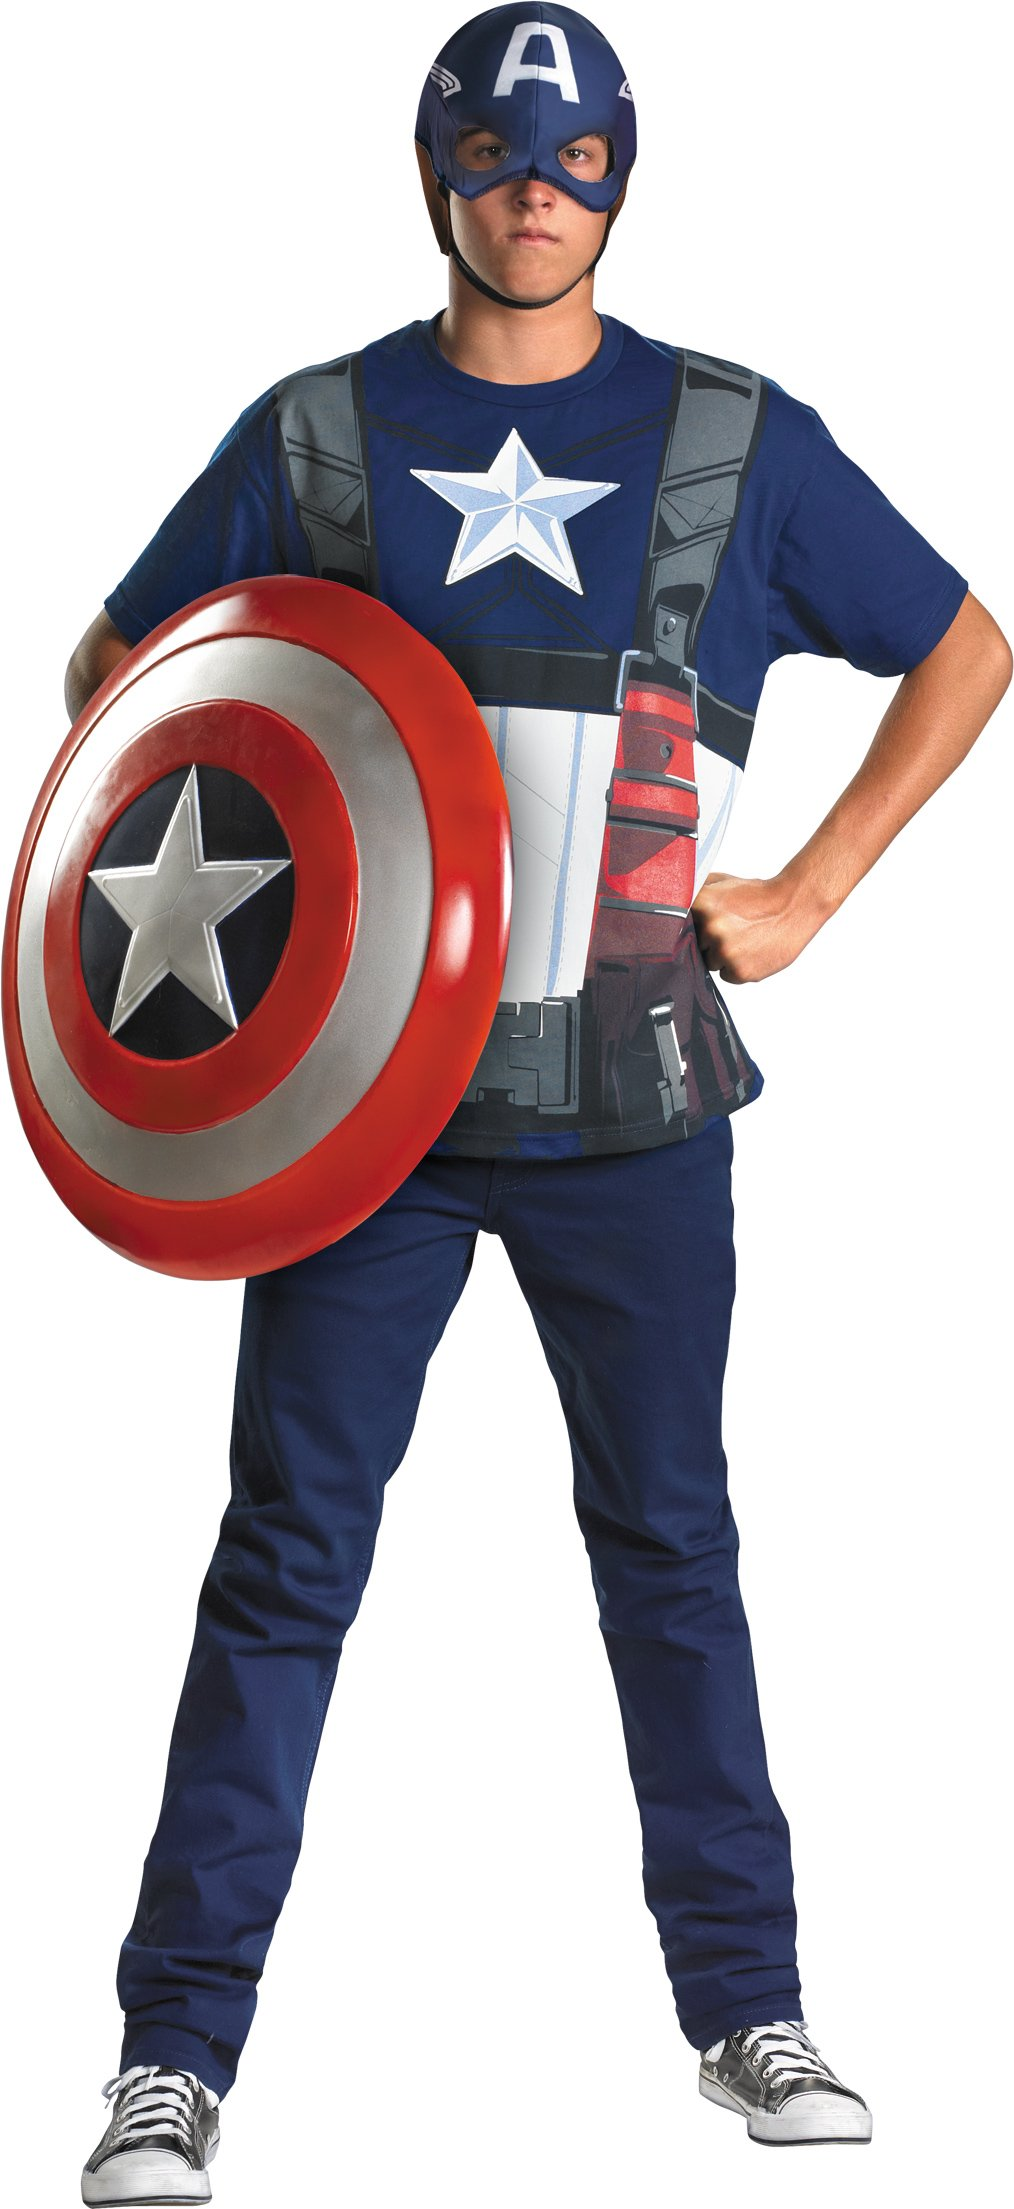 Captain America T-Shirt And Mask Adult Costume Set